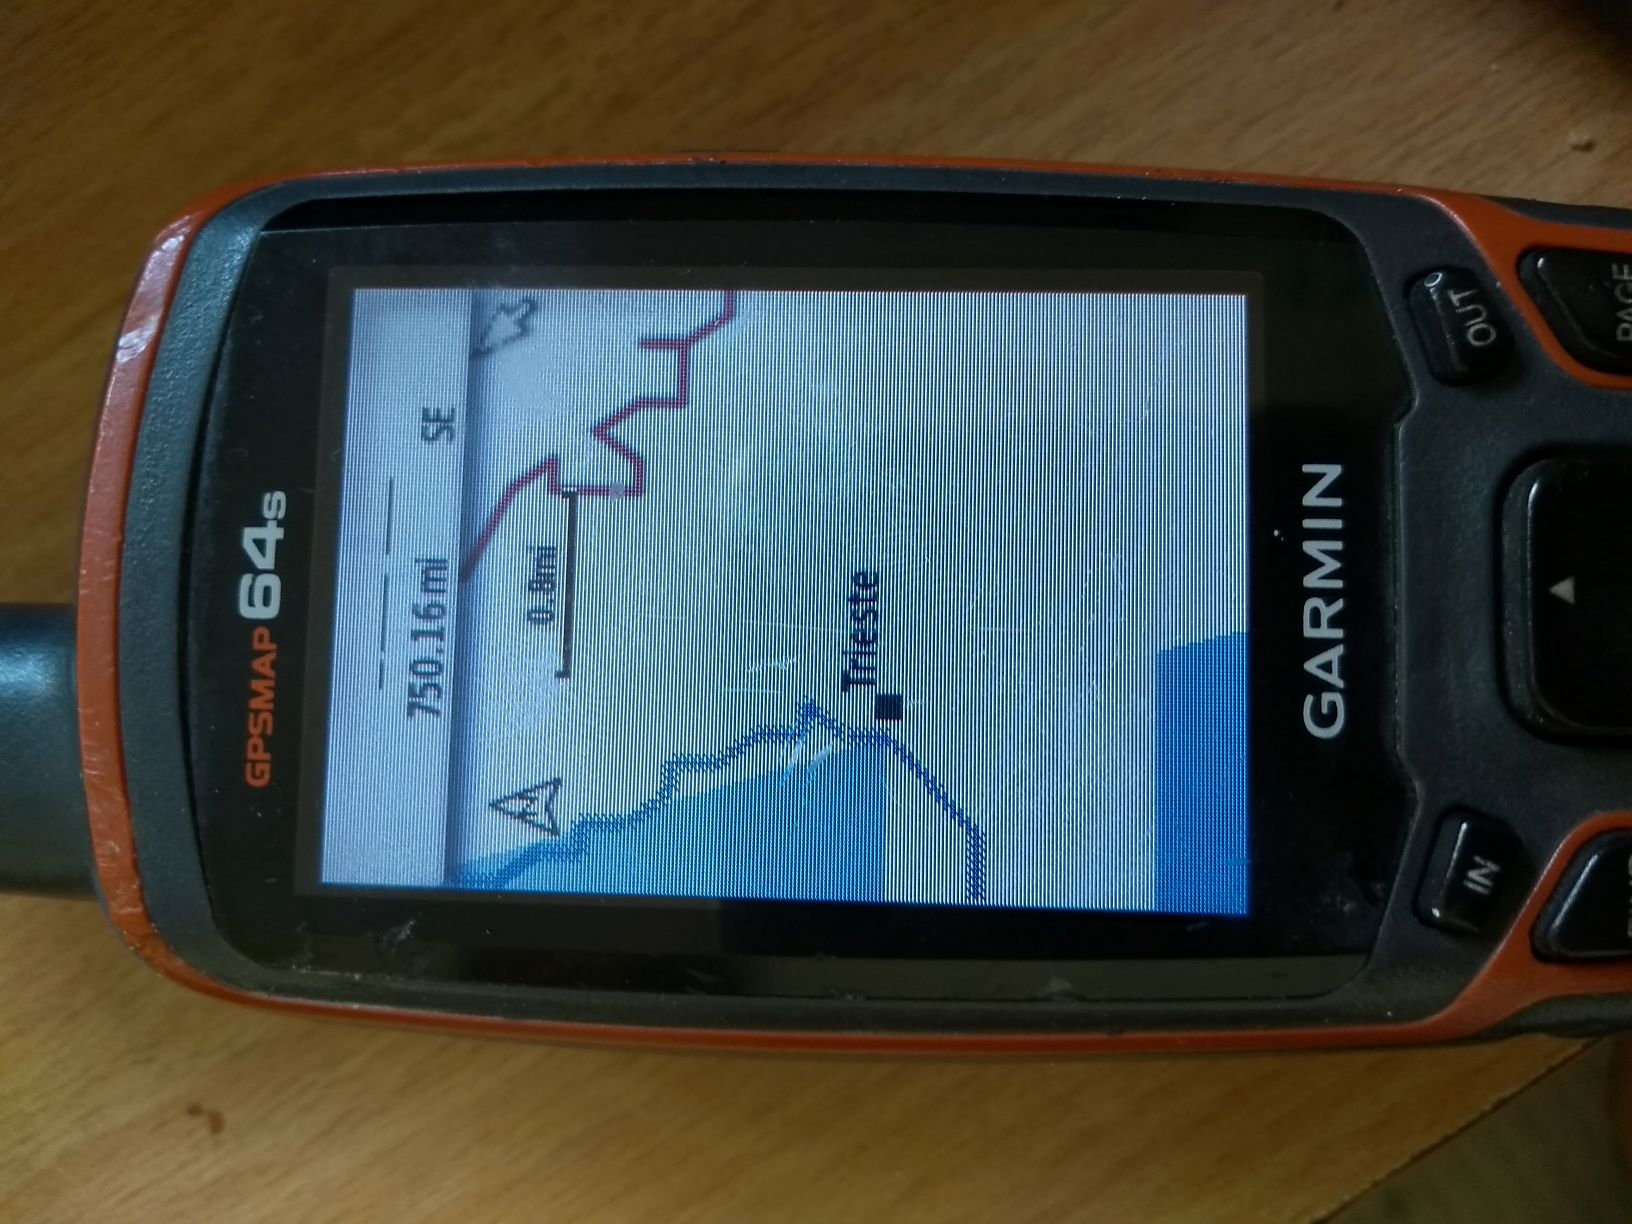 New - Premium Gmapsupp img - directly for Garmin GPS units - VeloMap